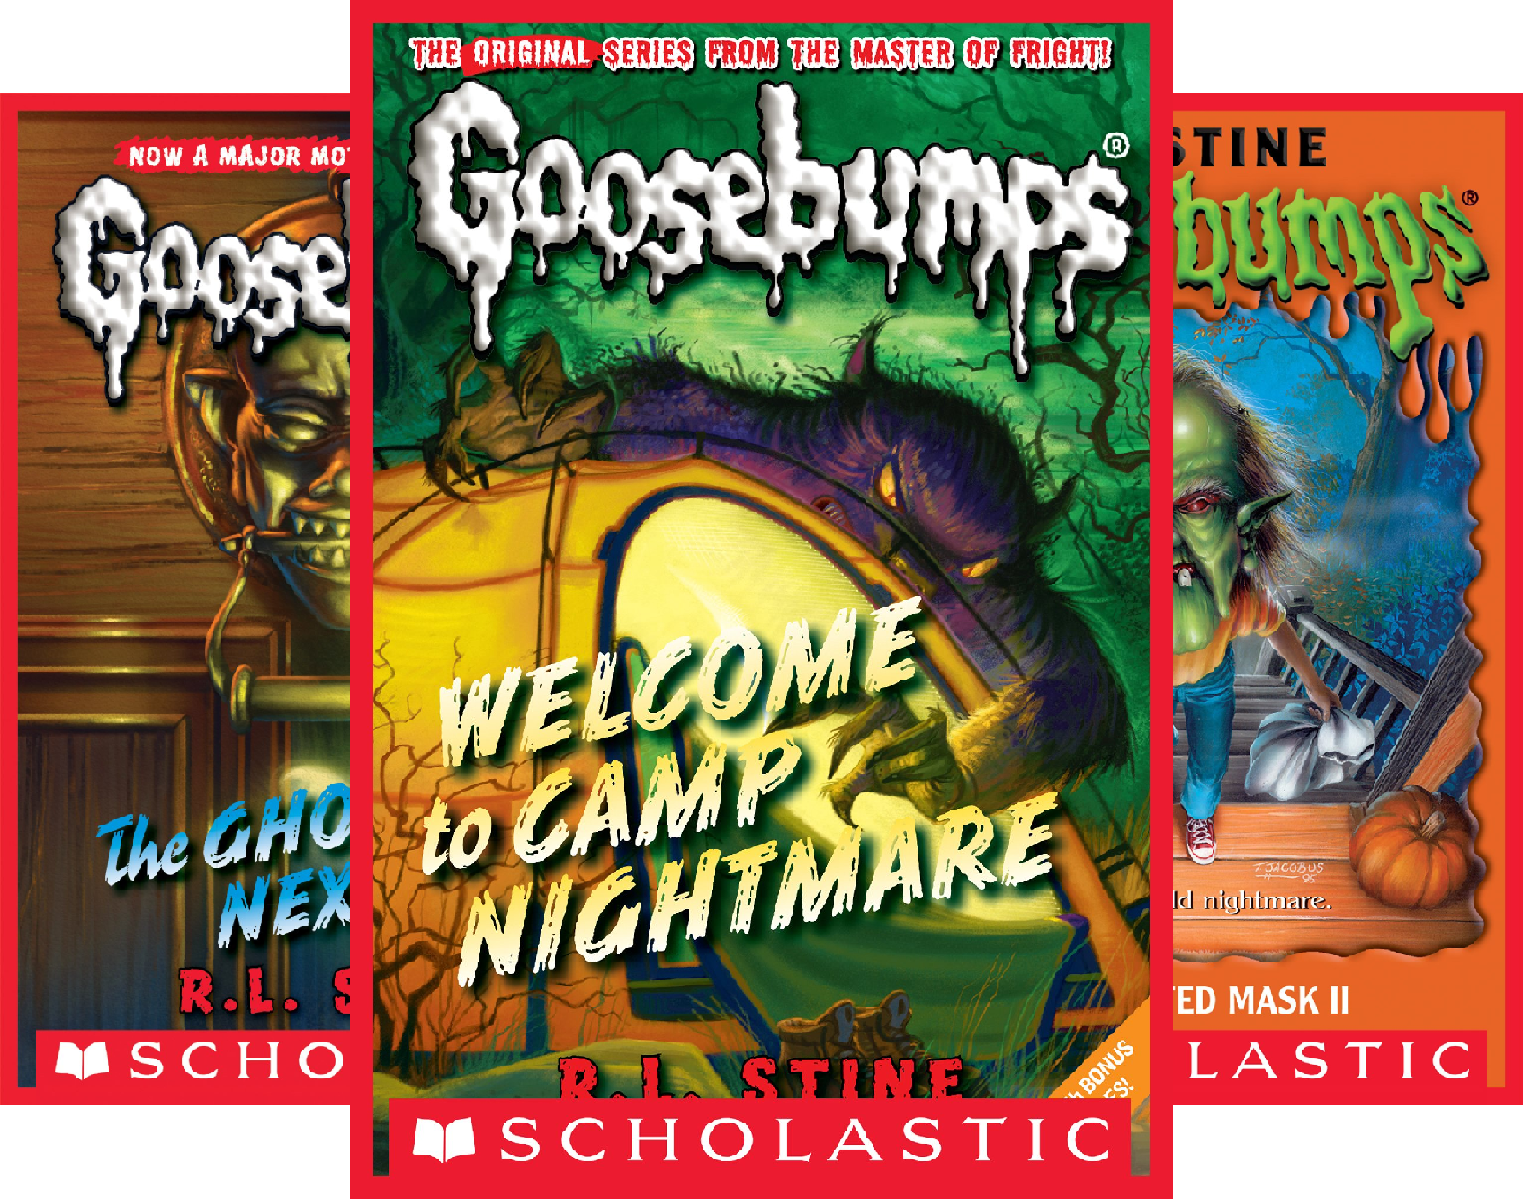 Goosebumps Boxed Set, Books 9-12: Welcome to Camp Nightmare, The Ghost Next Door, The Haunted Mask, and Be Careful What You Wish For (4 Book Series) ()